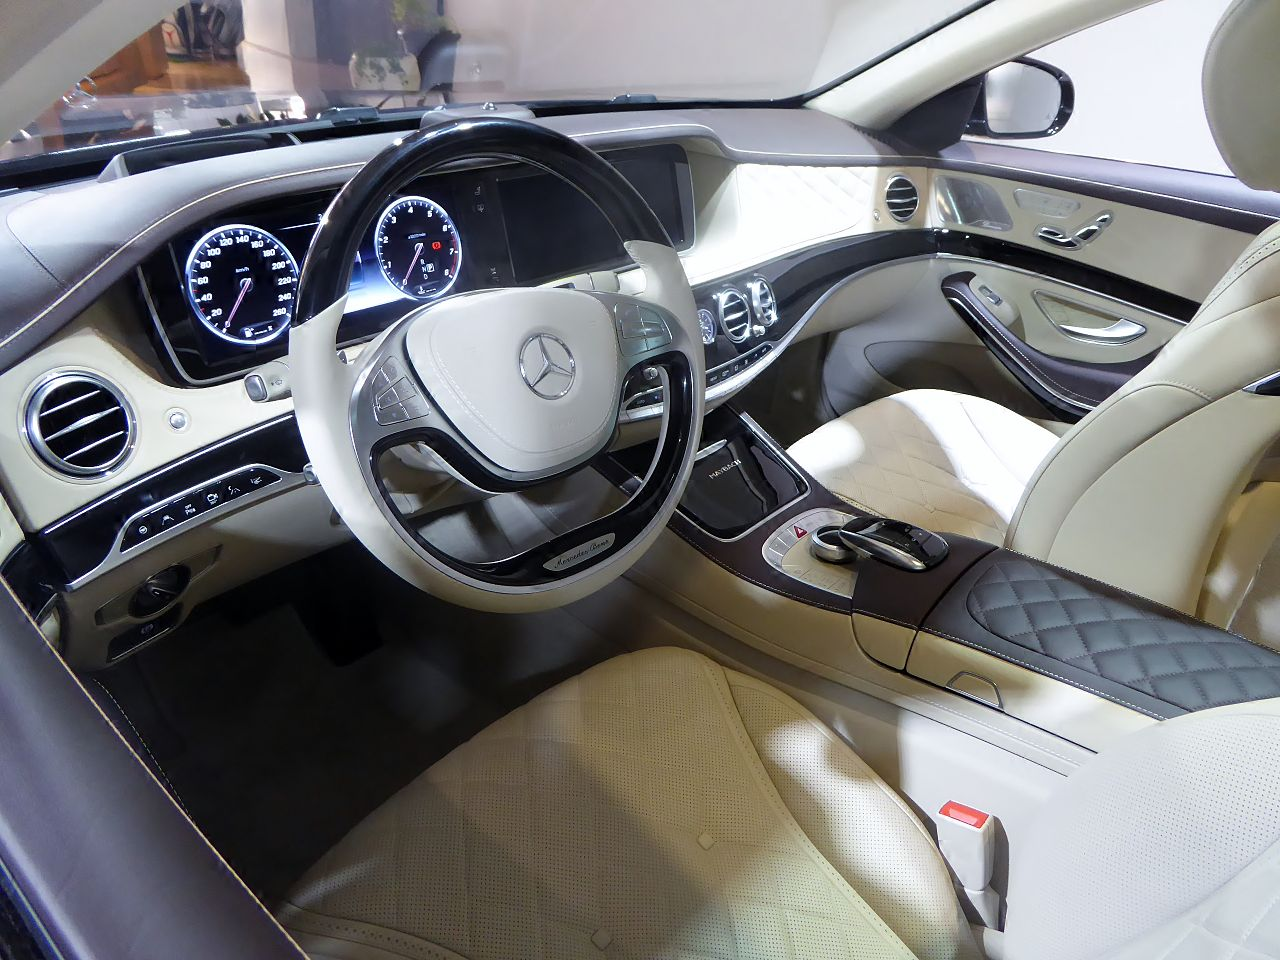 file the interior of mercedes maybach x222 s550 jpg wikimedia commons. Black Bedroom Furniture Sets. Home Design Ideas